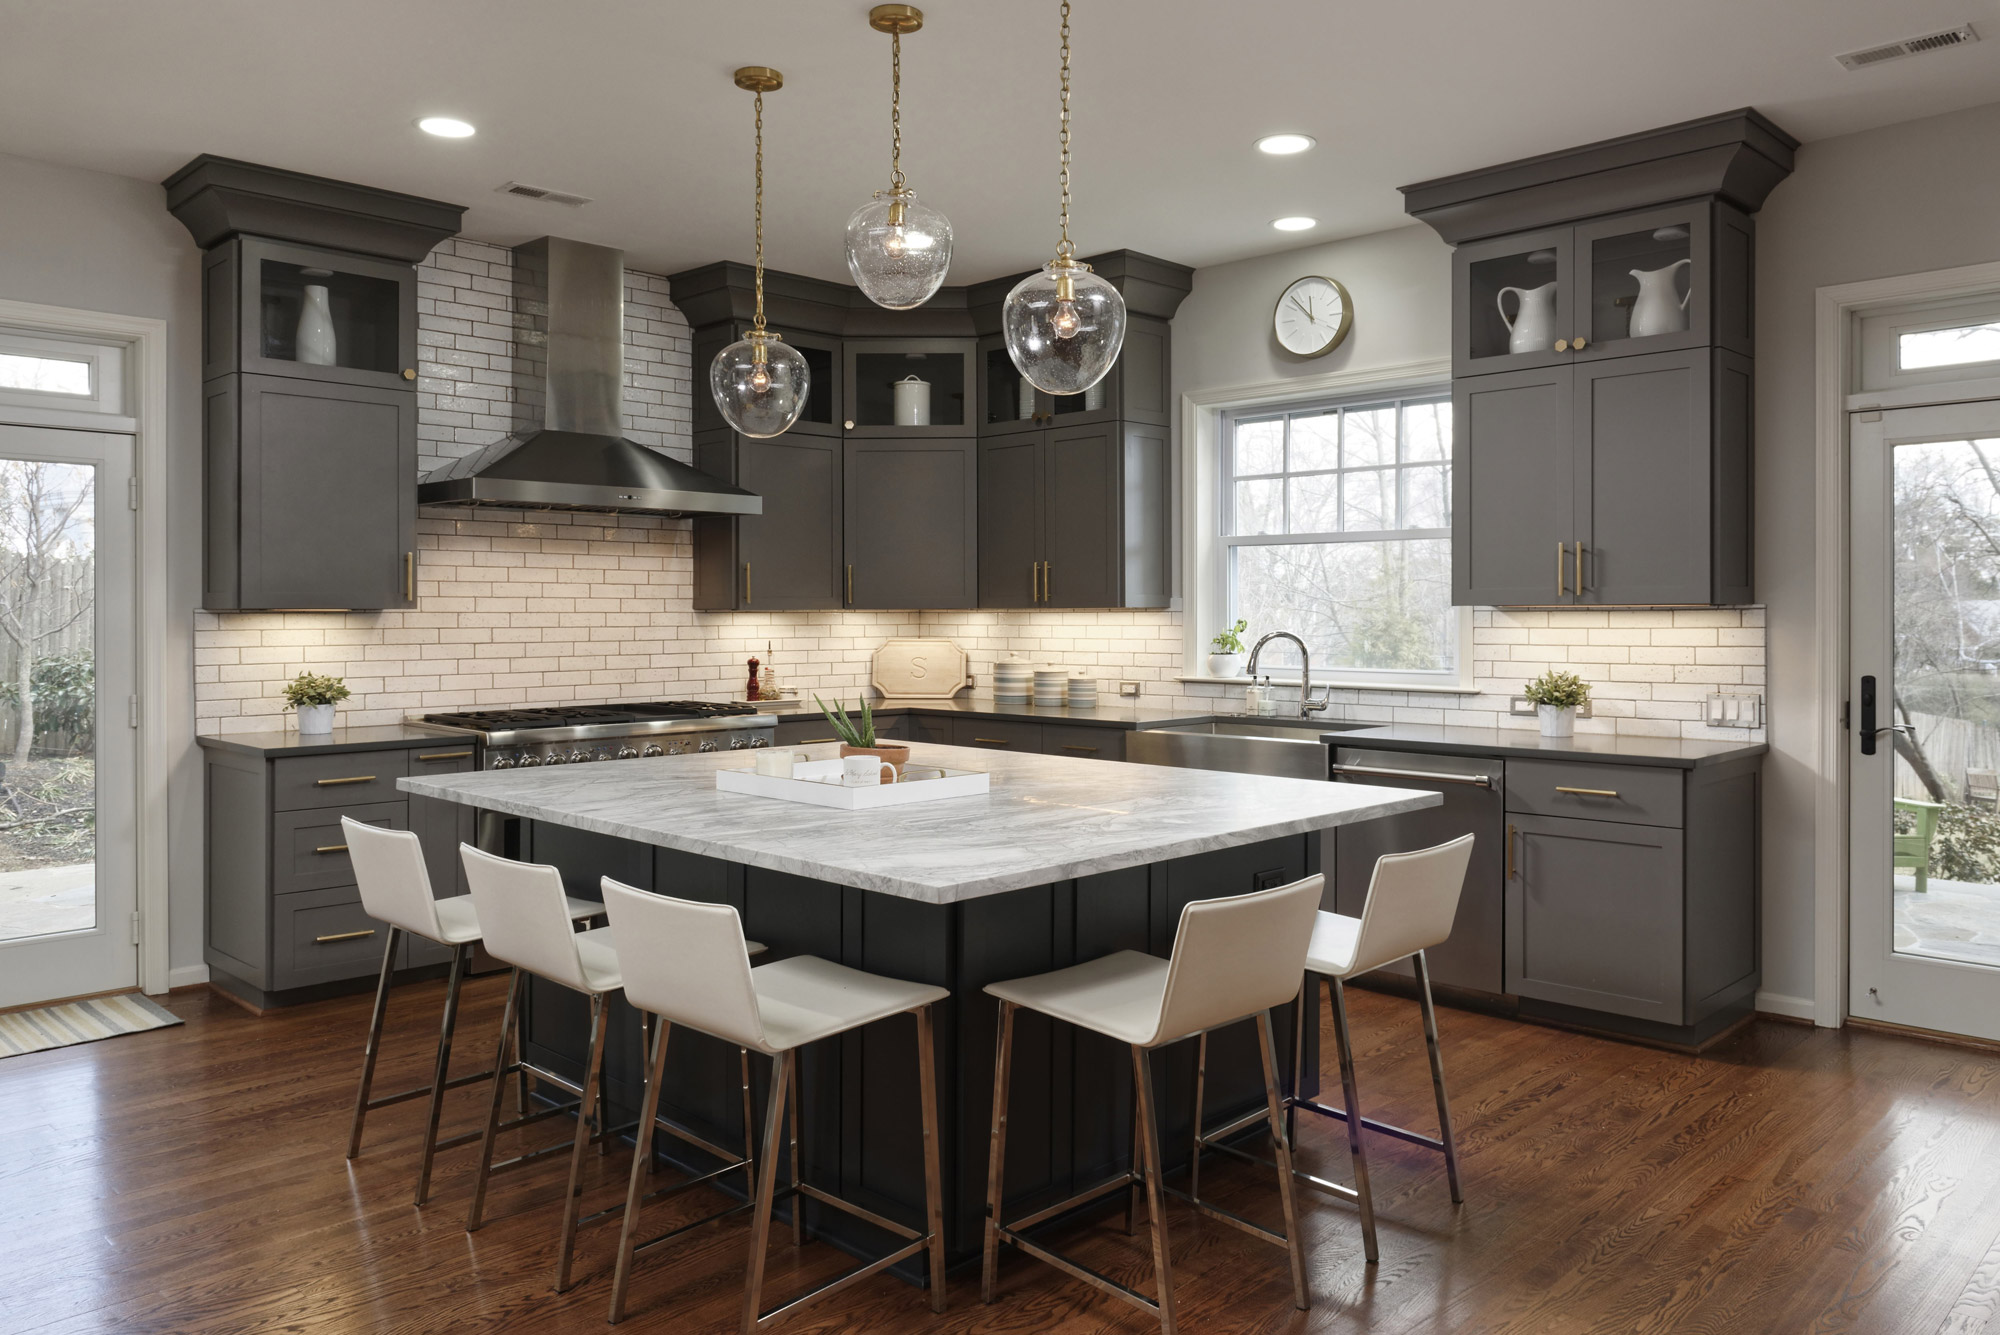 Photos Of A Remodeled Kitchen In Alexandria Va